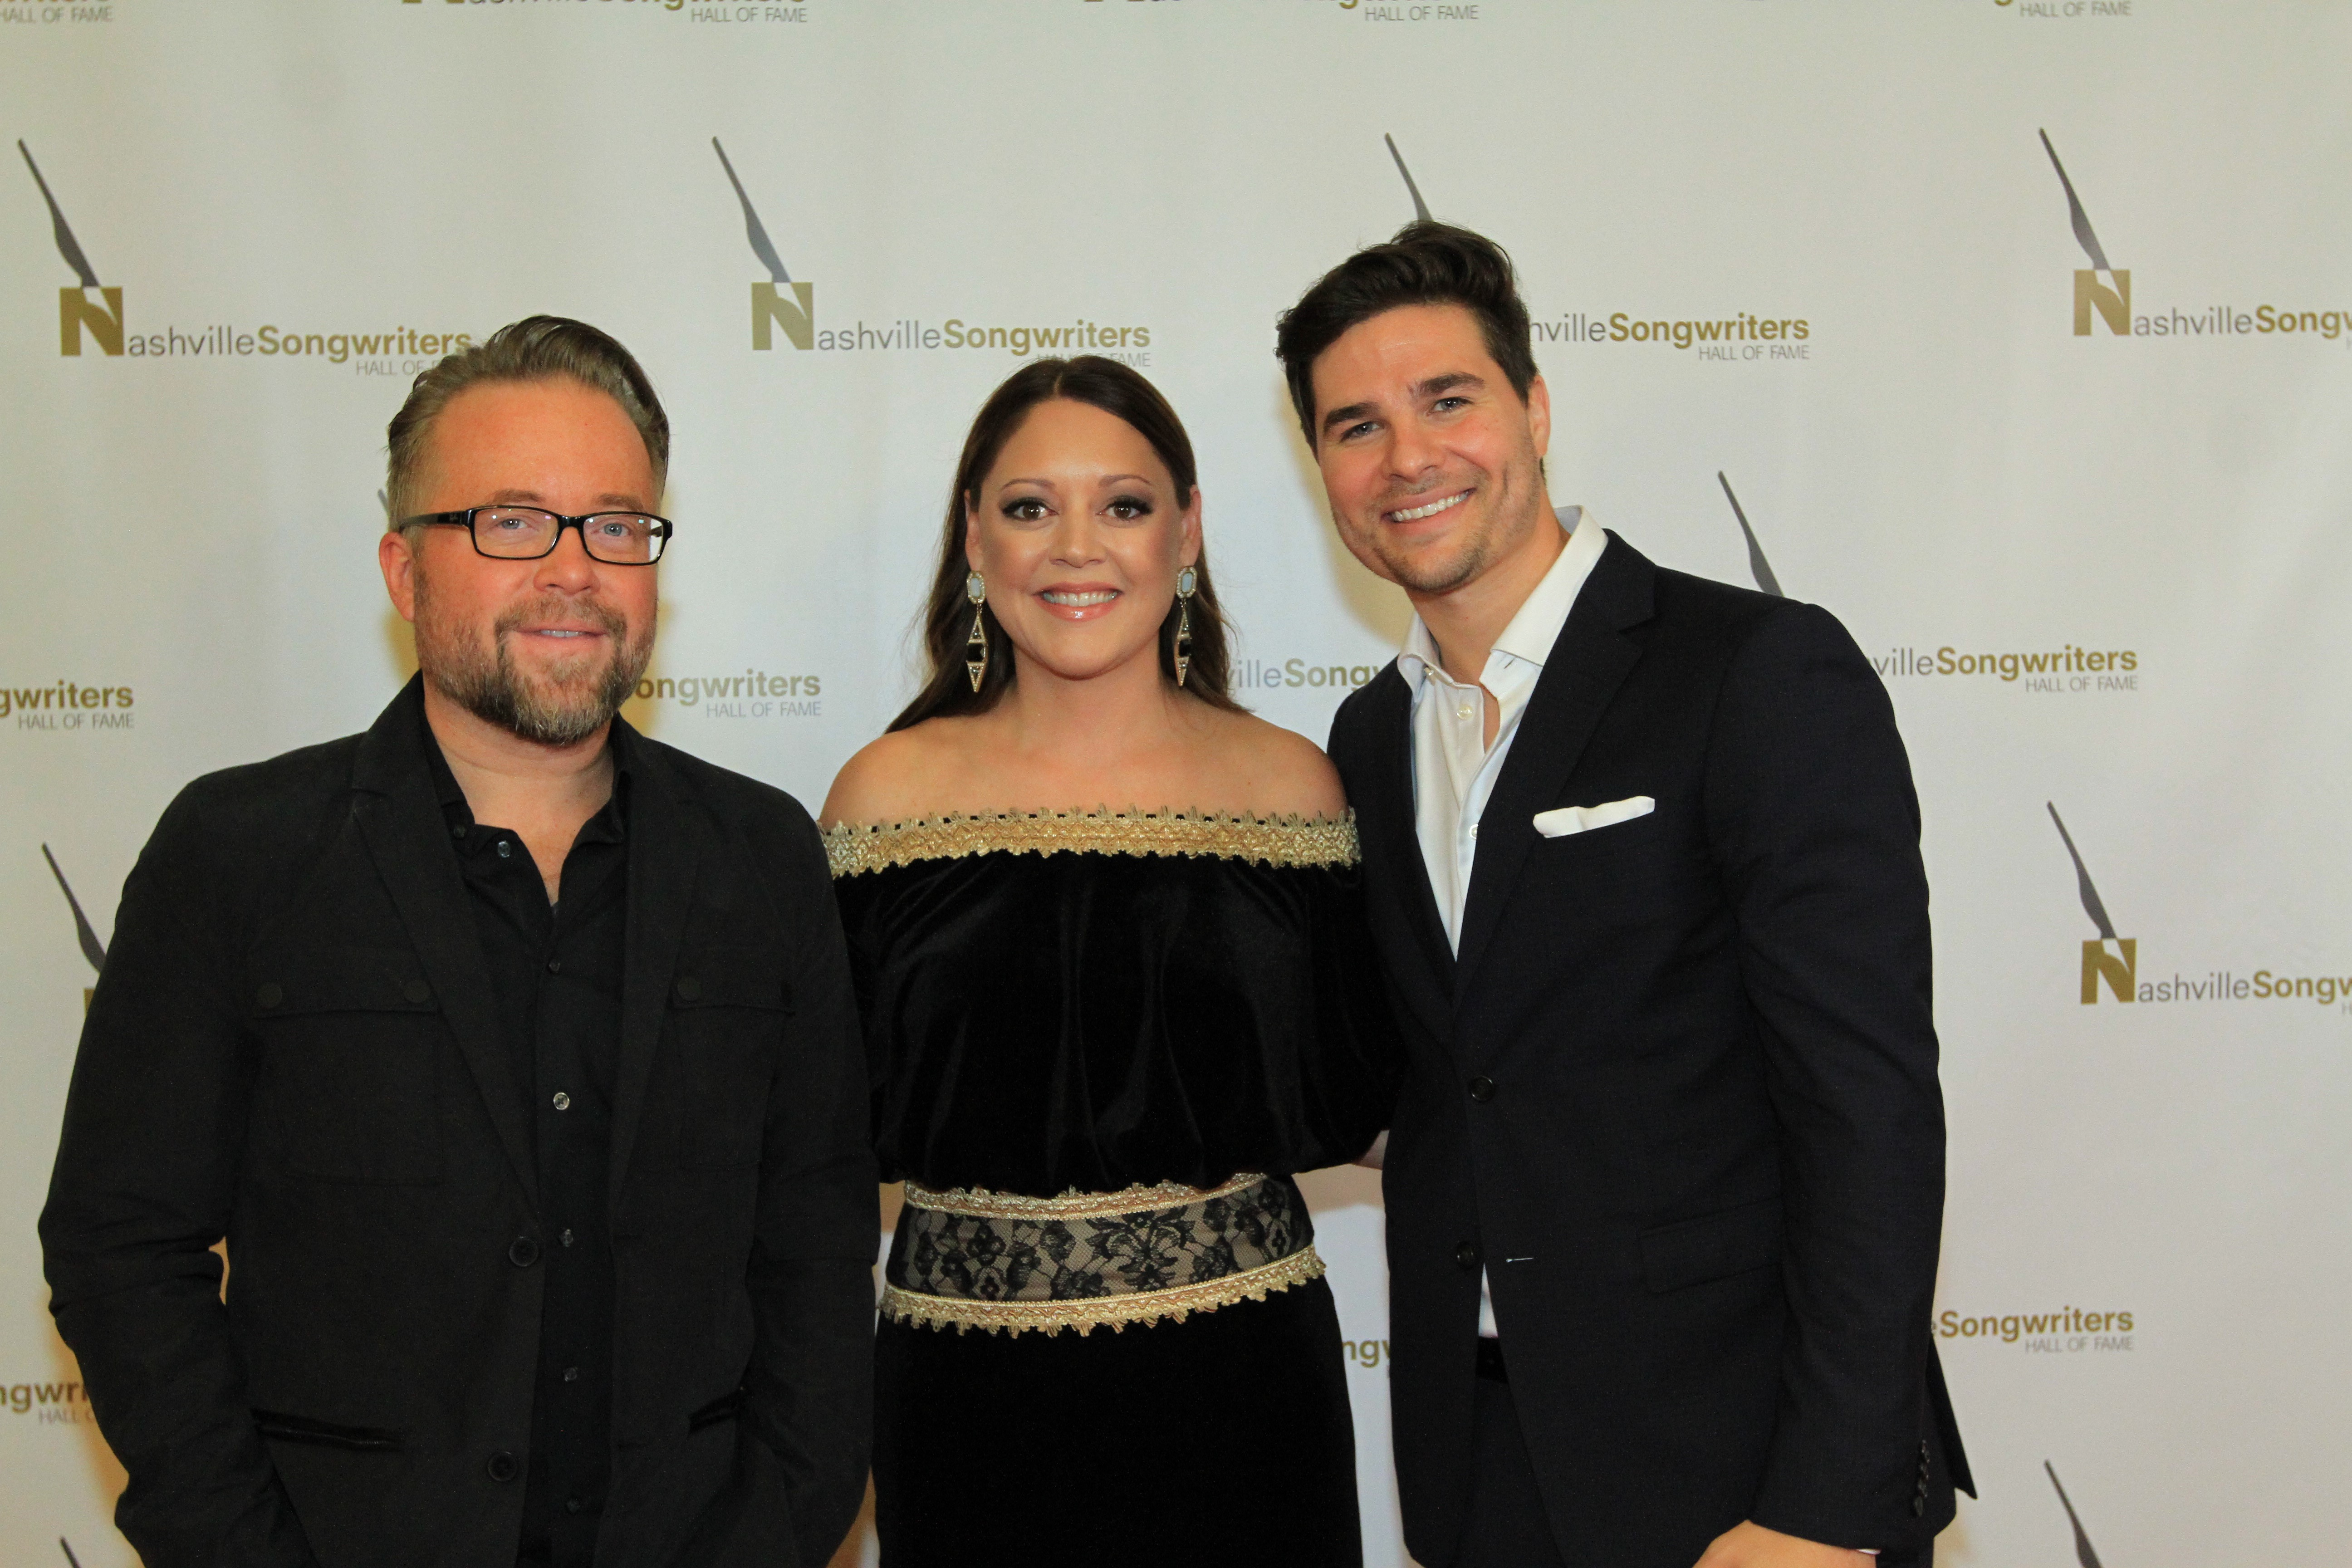 """Photo (l-r) Clint Lagerberg, Hillary Lindsey and Steven Lee Olsen, writers of NSAI Song of the Year """"Blue Ain't Your Color.""""; Photo by Bev Moser"""